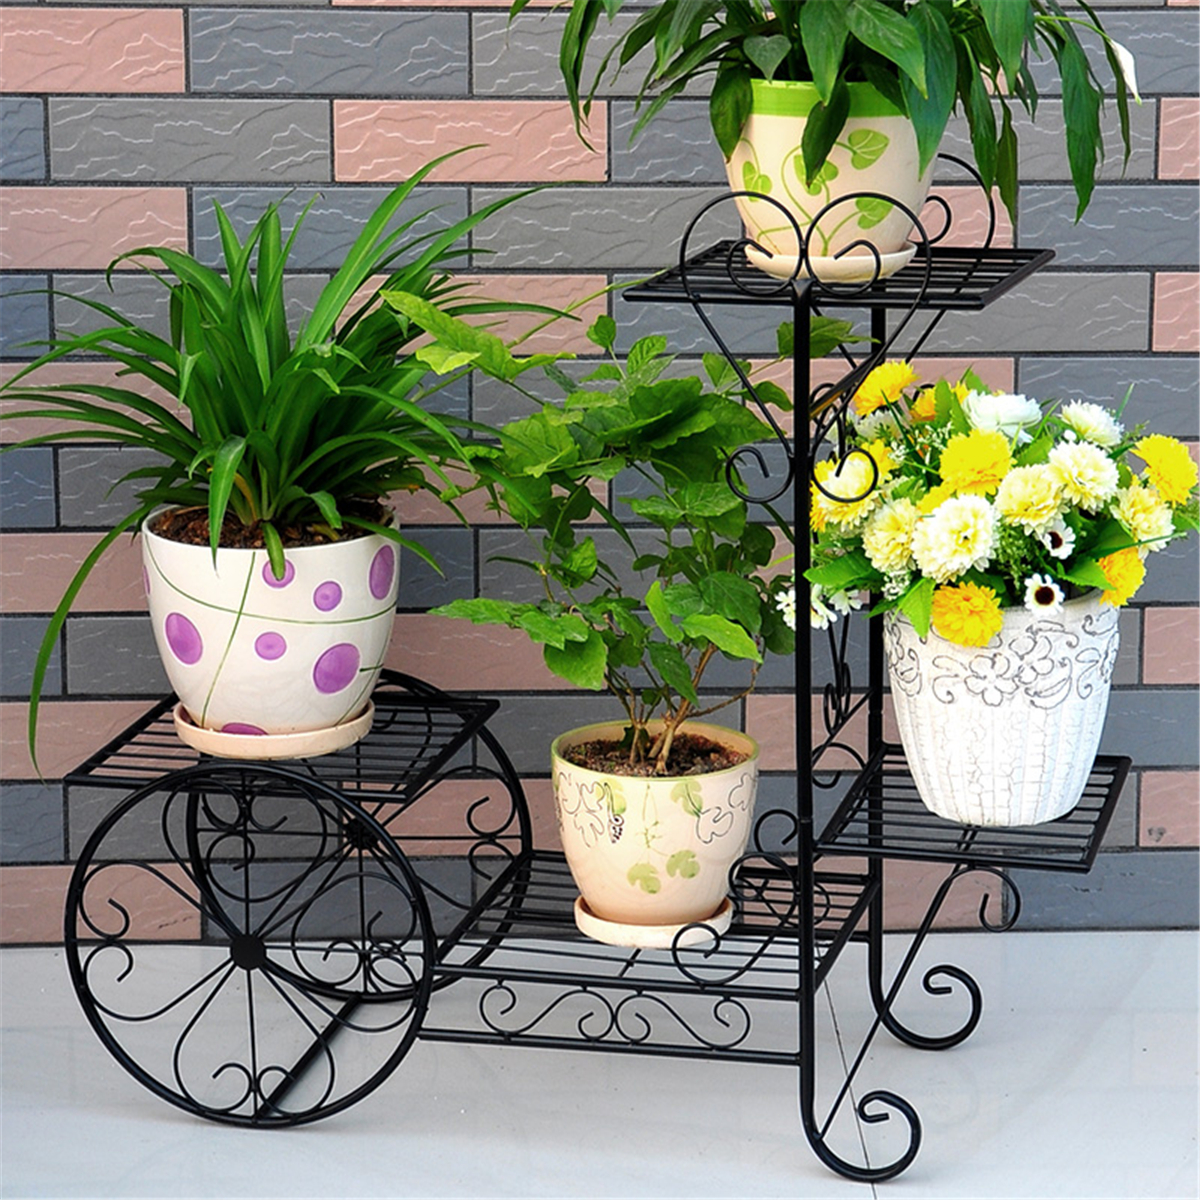 Outdoor Planter Stand Iron bicycle plant pot garden flower display indoor outdoor planter iron bicycle plant pot garden flower display indoor workwithnaturefo